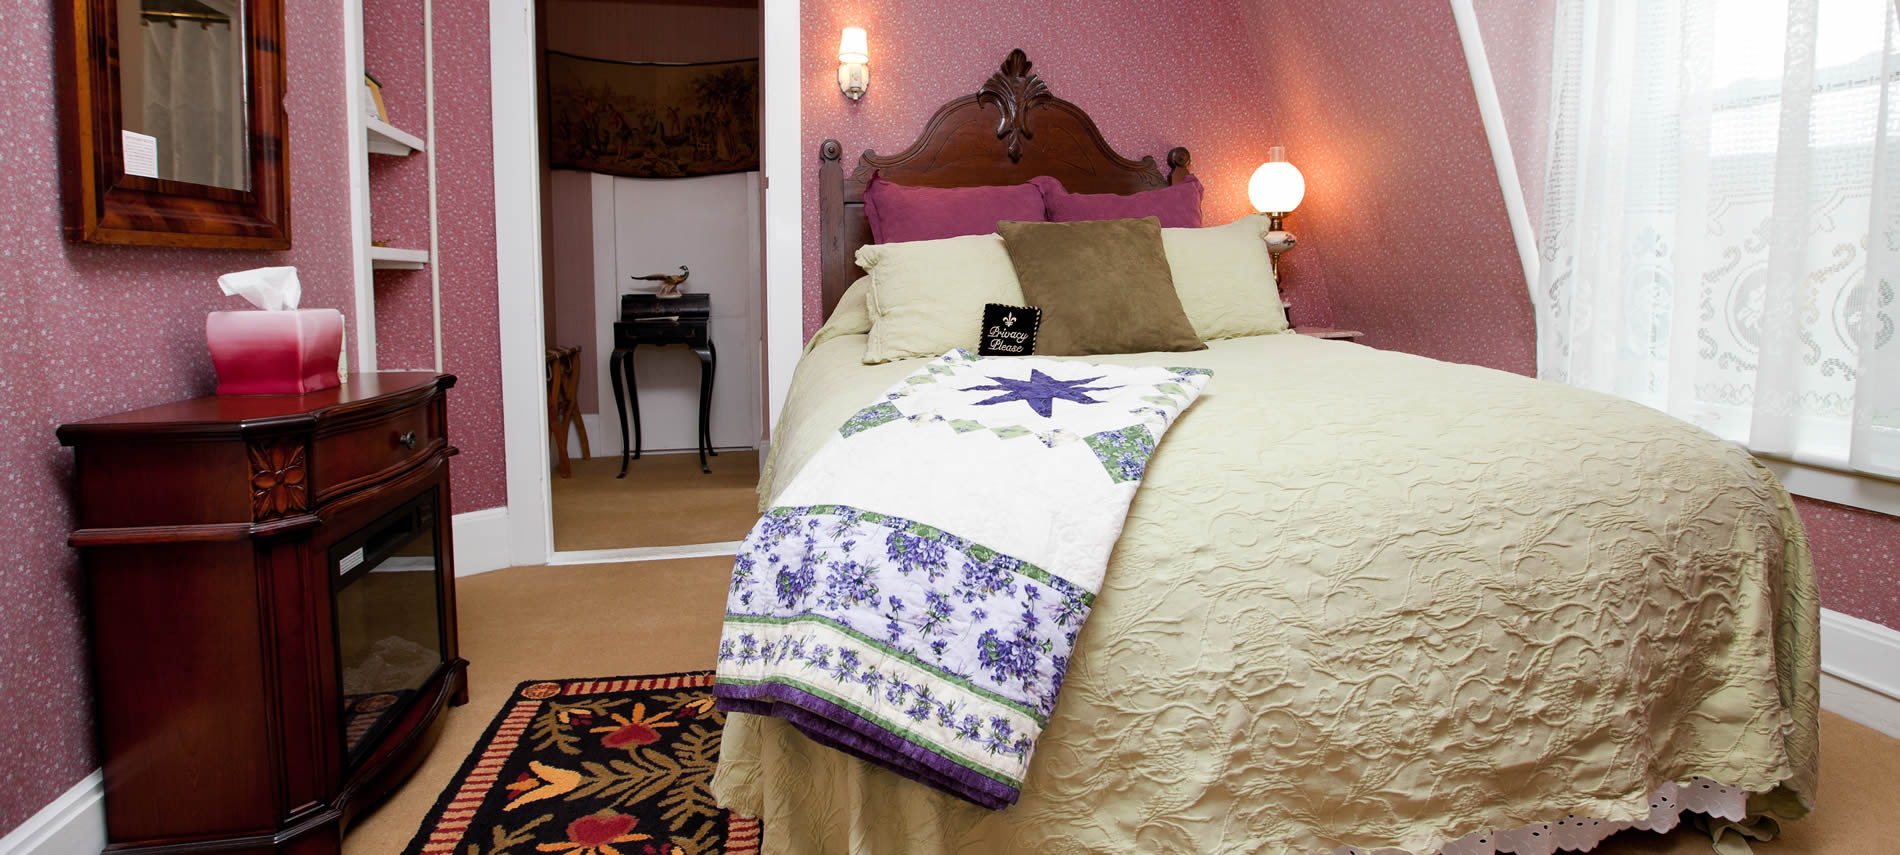 Prince Leopold guest room with pink papered walls and carved bed with ivory bedding, and window